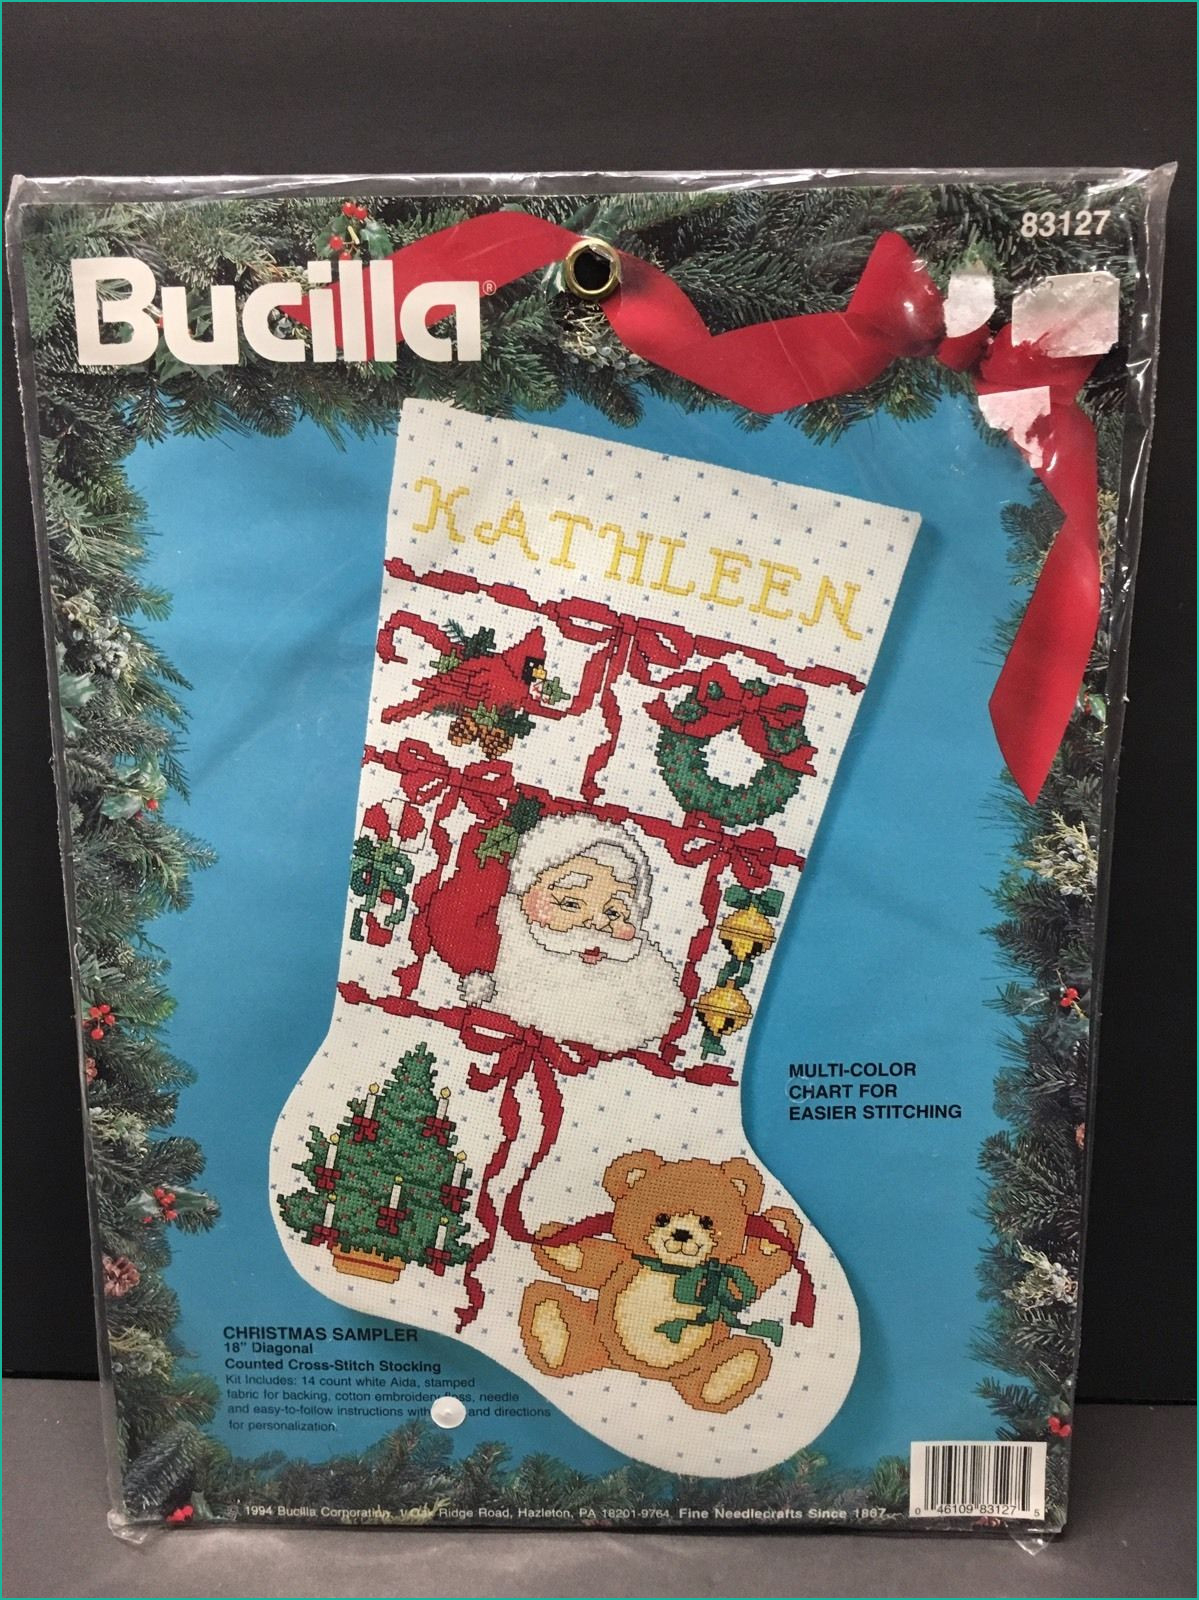 59 Marvelous Cross Stitch Christmas Stockings Kits Images – Mauipaniolo - Free Printable Cross Stitch Christmas Stocking Patterns